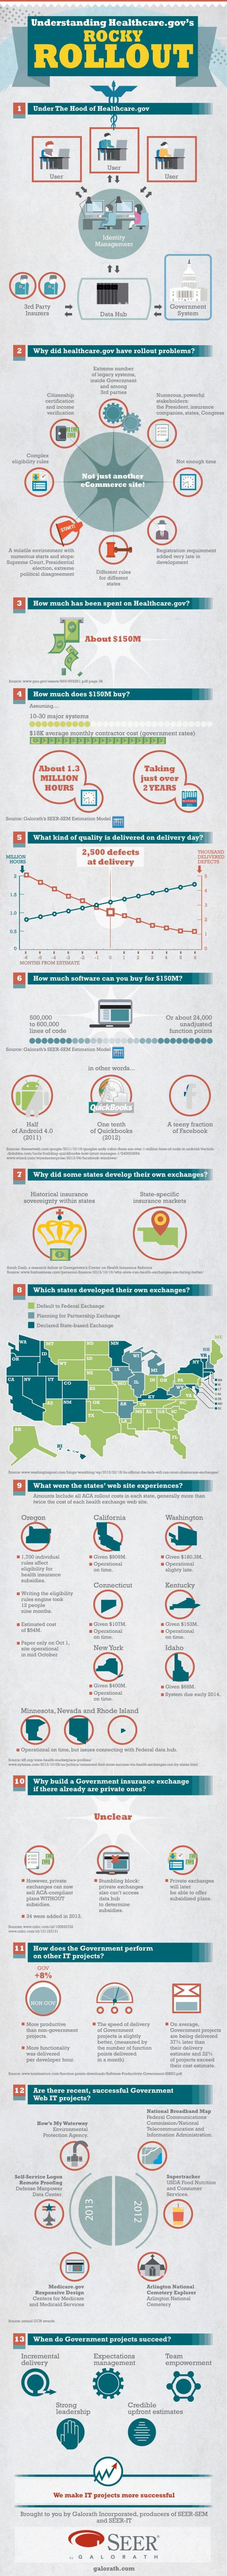 Understanding Healthcare.gov's Rocky Rollout Infographic - An Infographic from Project Planning Estimation